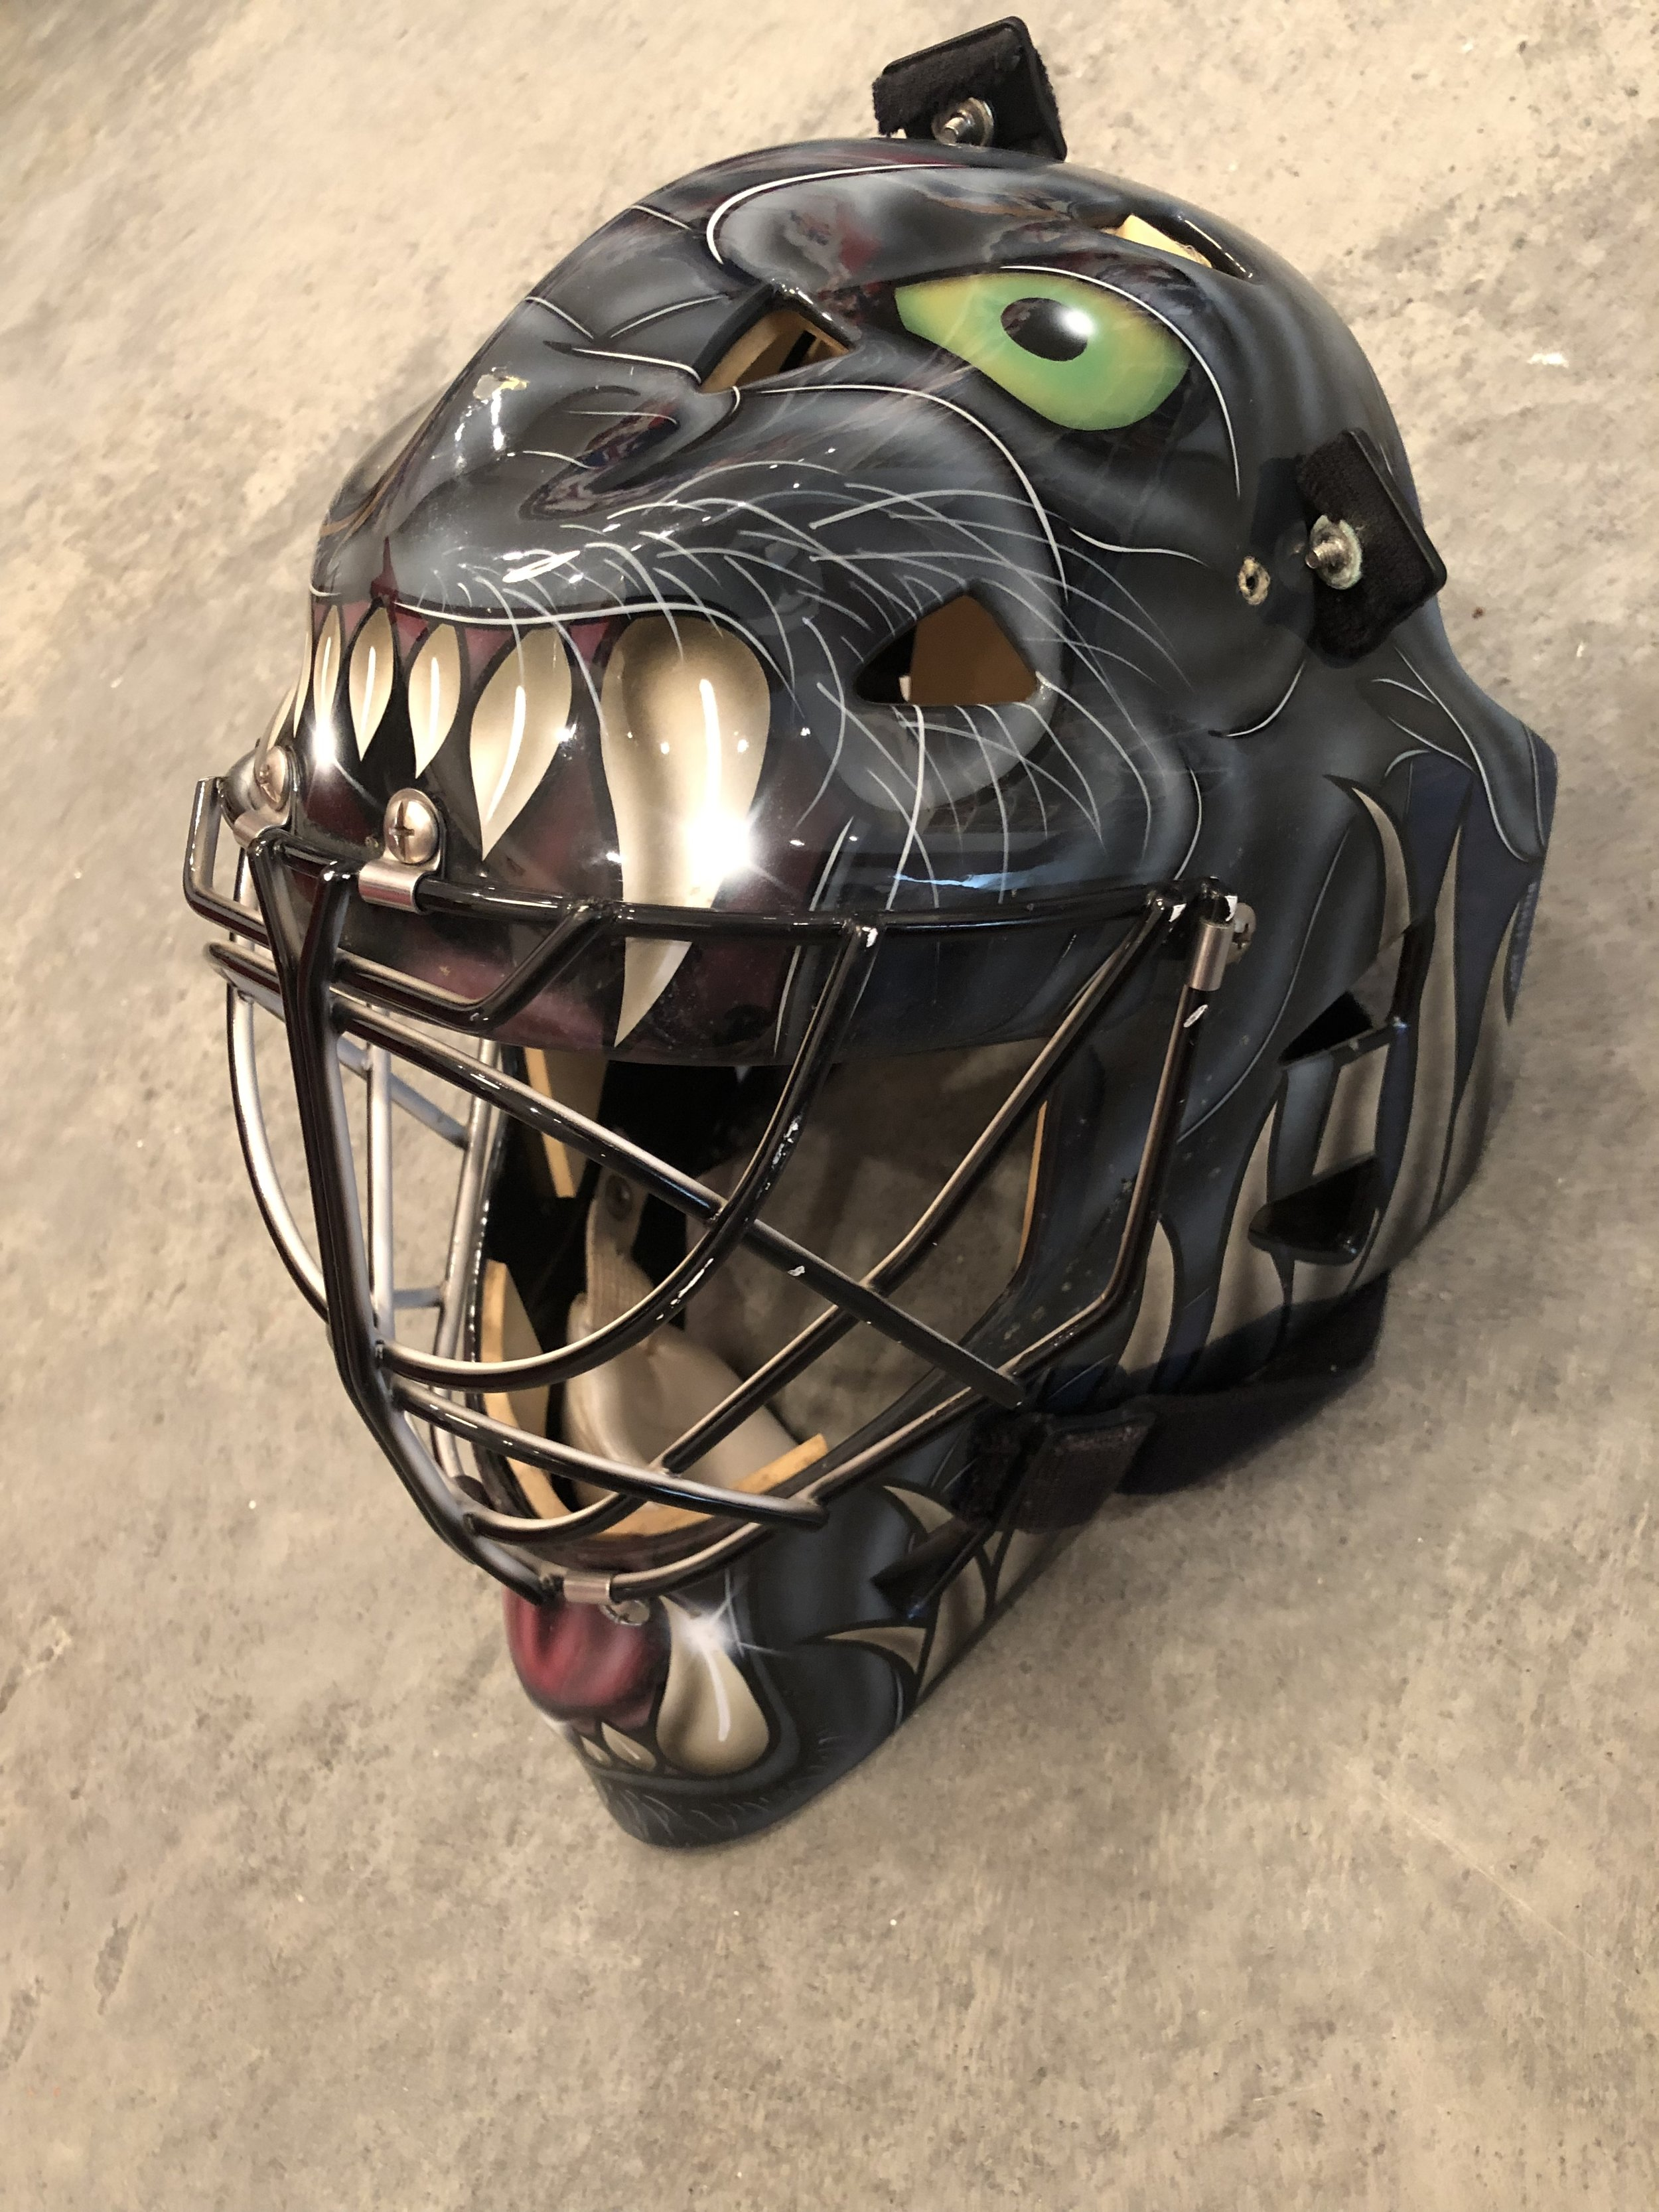 2000-01 Kevin Weekes Tampa Bay Lightning game worn mask - PHOTO MATCHED   For Sale or trade for other NHL masks only - $3,000